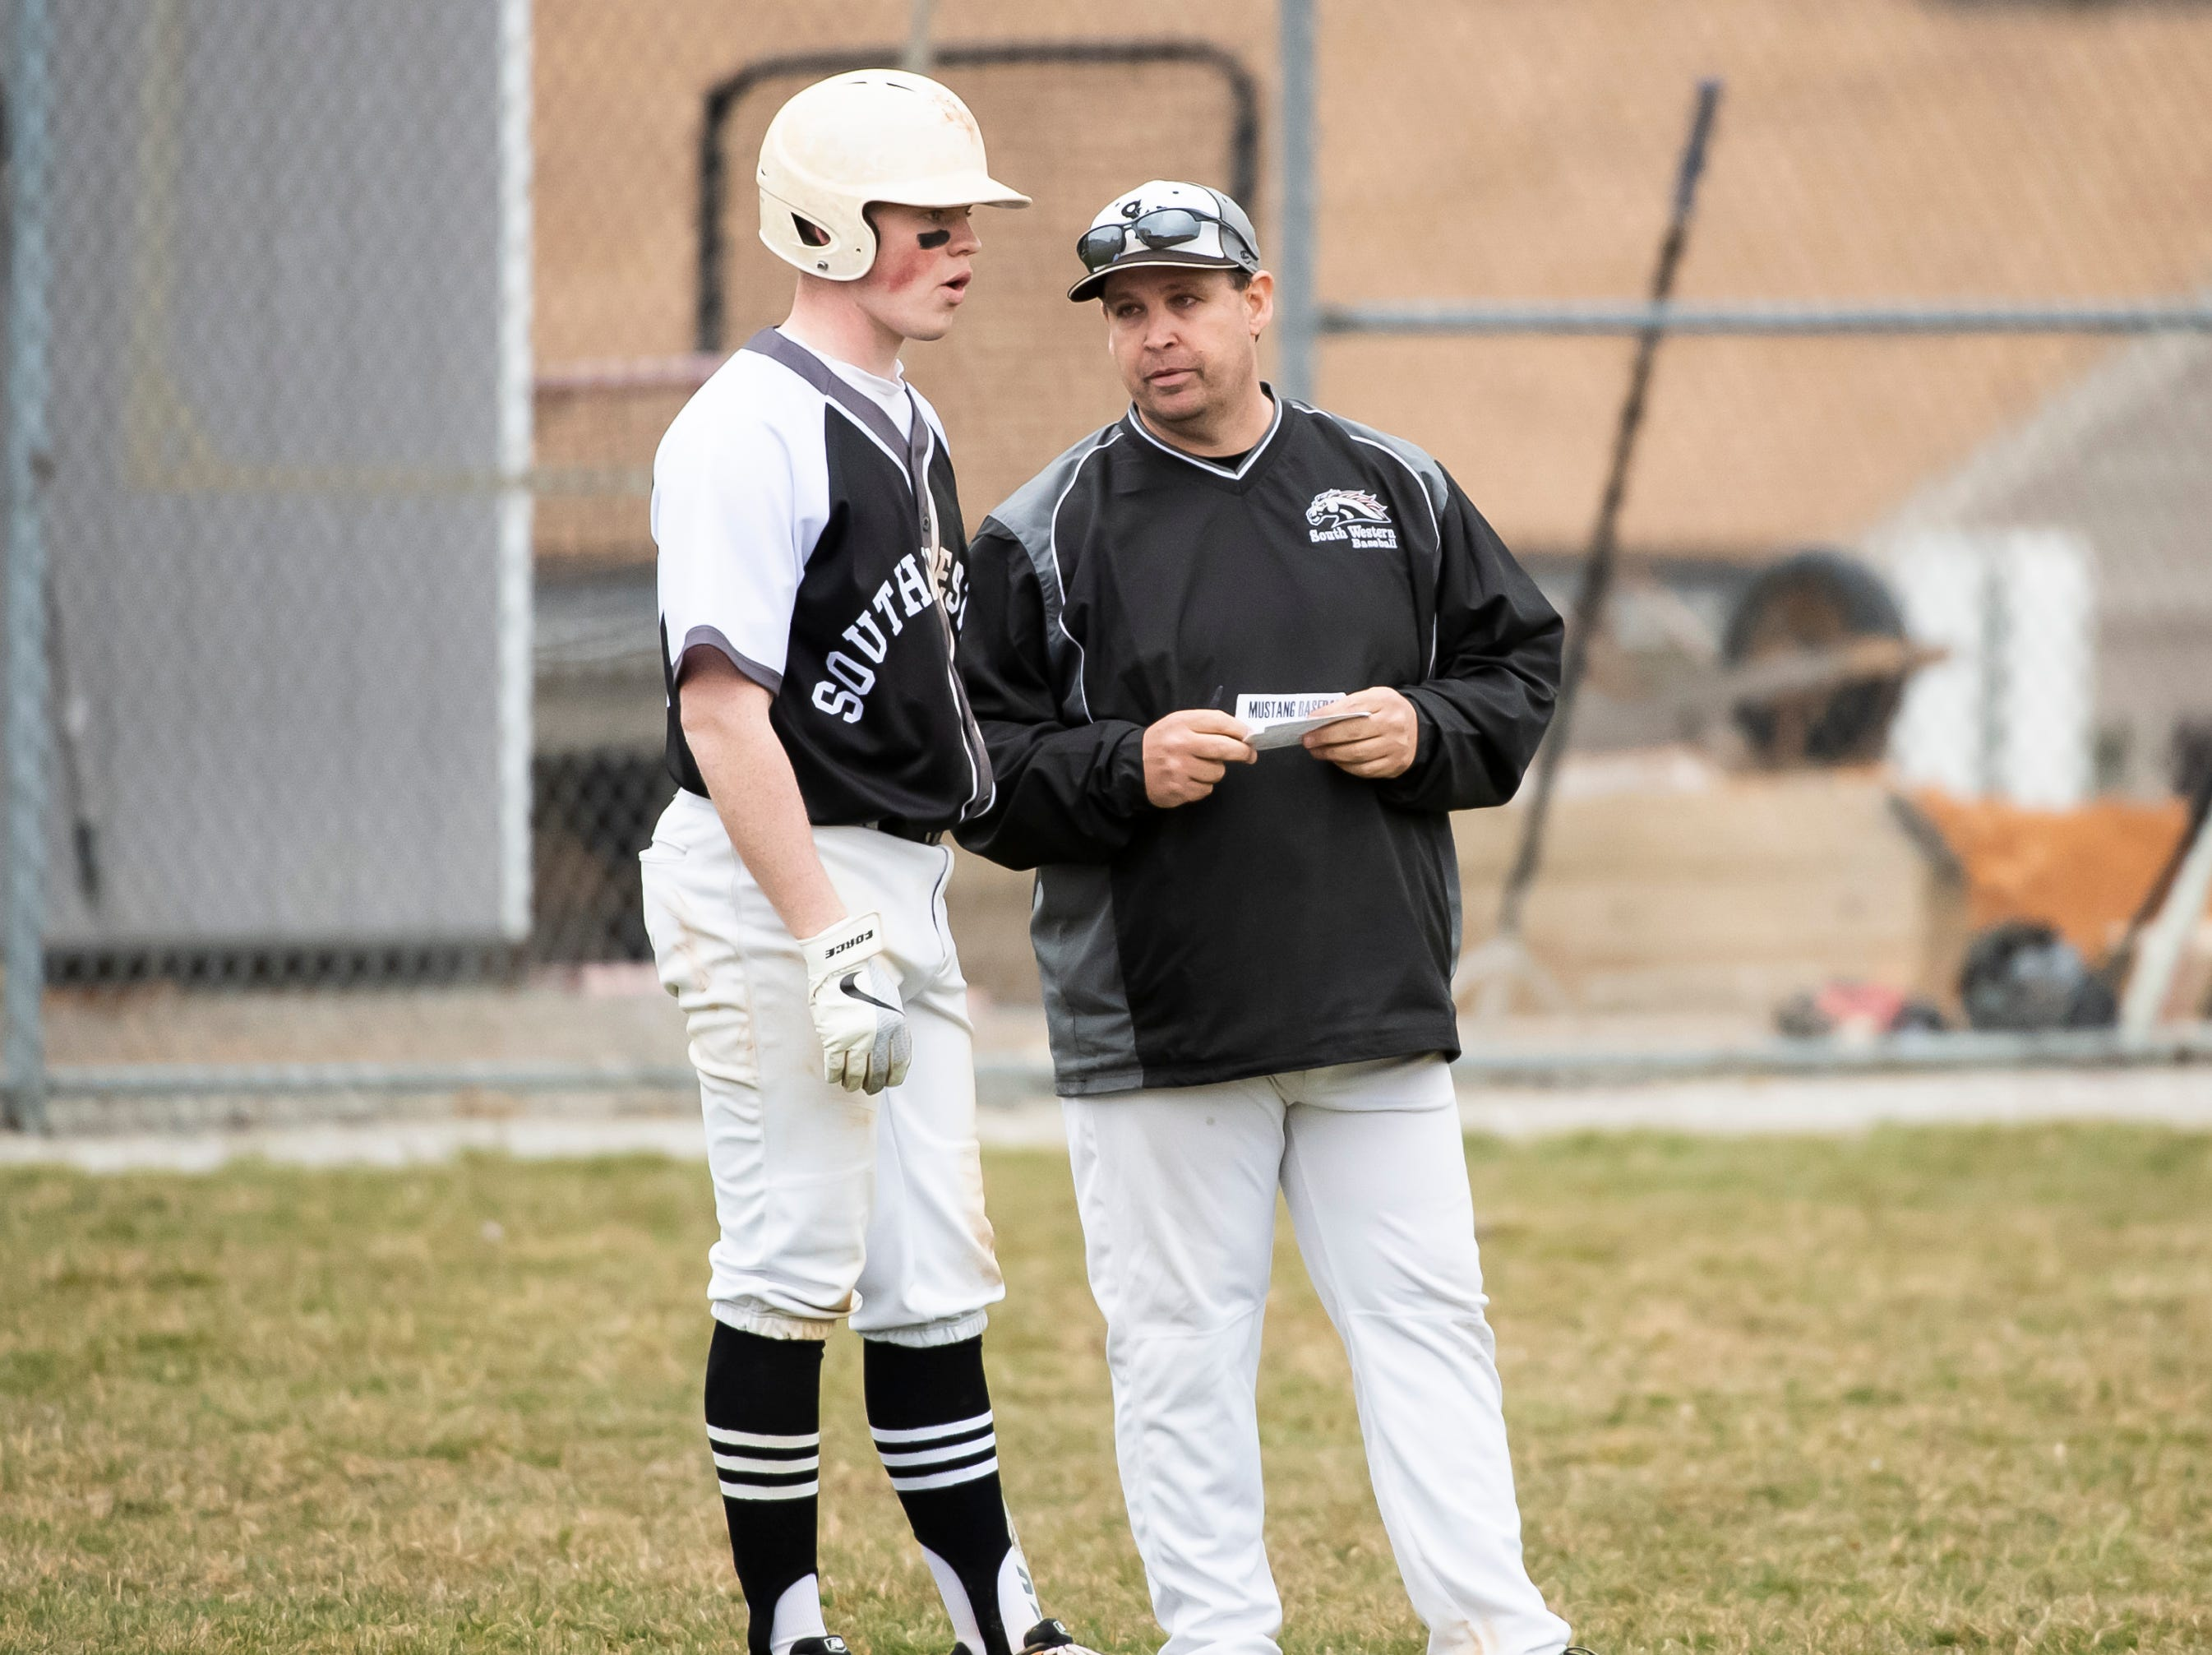 South Western's Josh Tippin speaks with head coach Mike Resetar during a pause in play against Carlisle in Hanover on Friday, March 29, 2019. The Mustangs won 11-9.